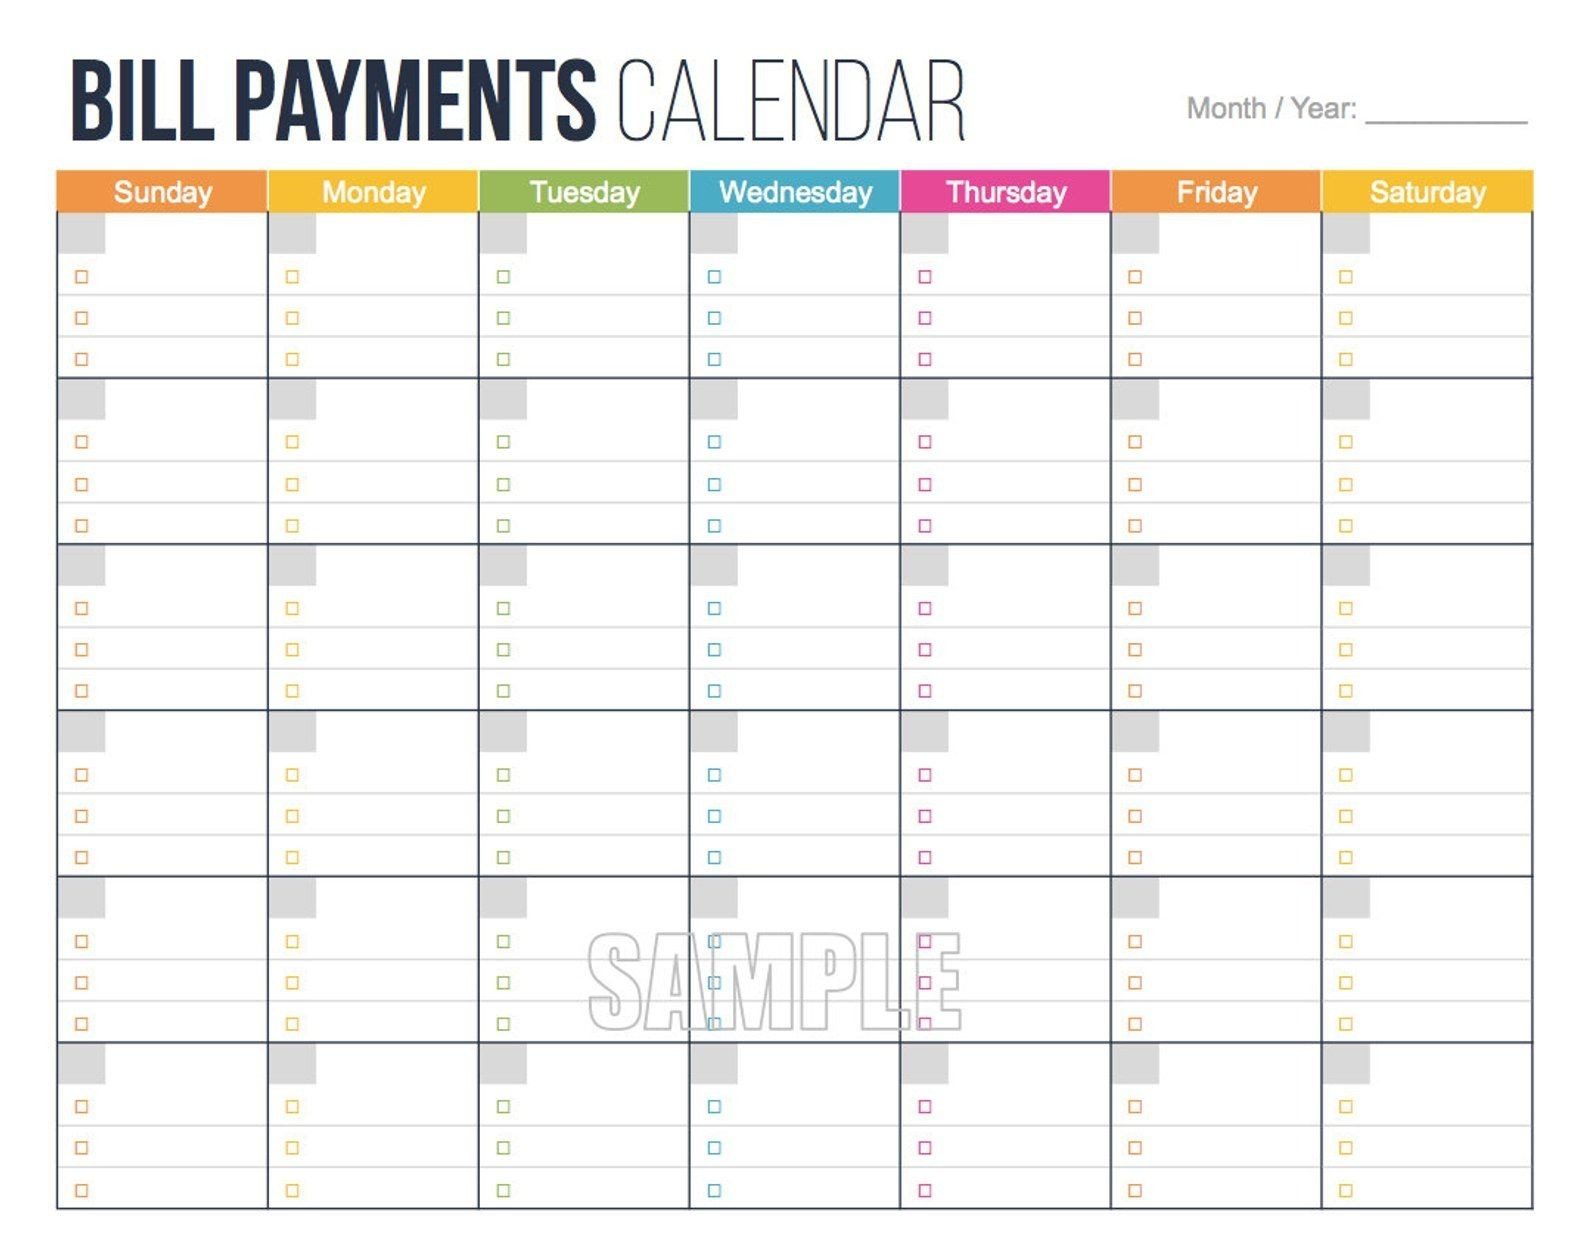 Bill Payments Calendar - Personal Finance Organizing  Monthly Payment Calendar Pdf